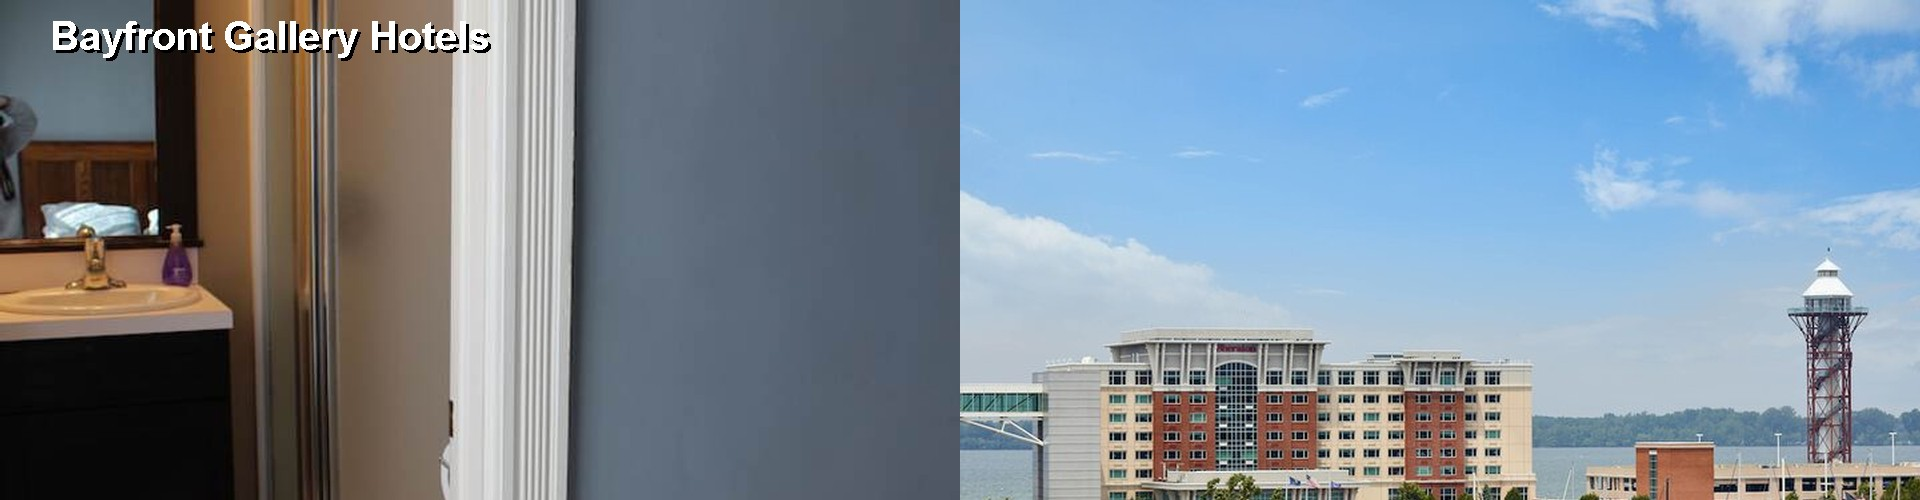 $59+ TOP Hotels Near Bayfront Gallery in Erie PA